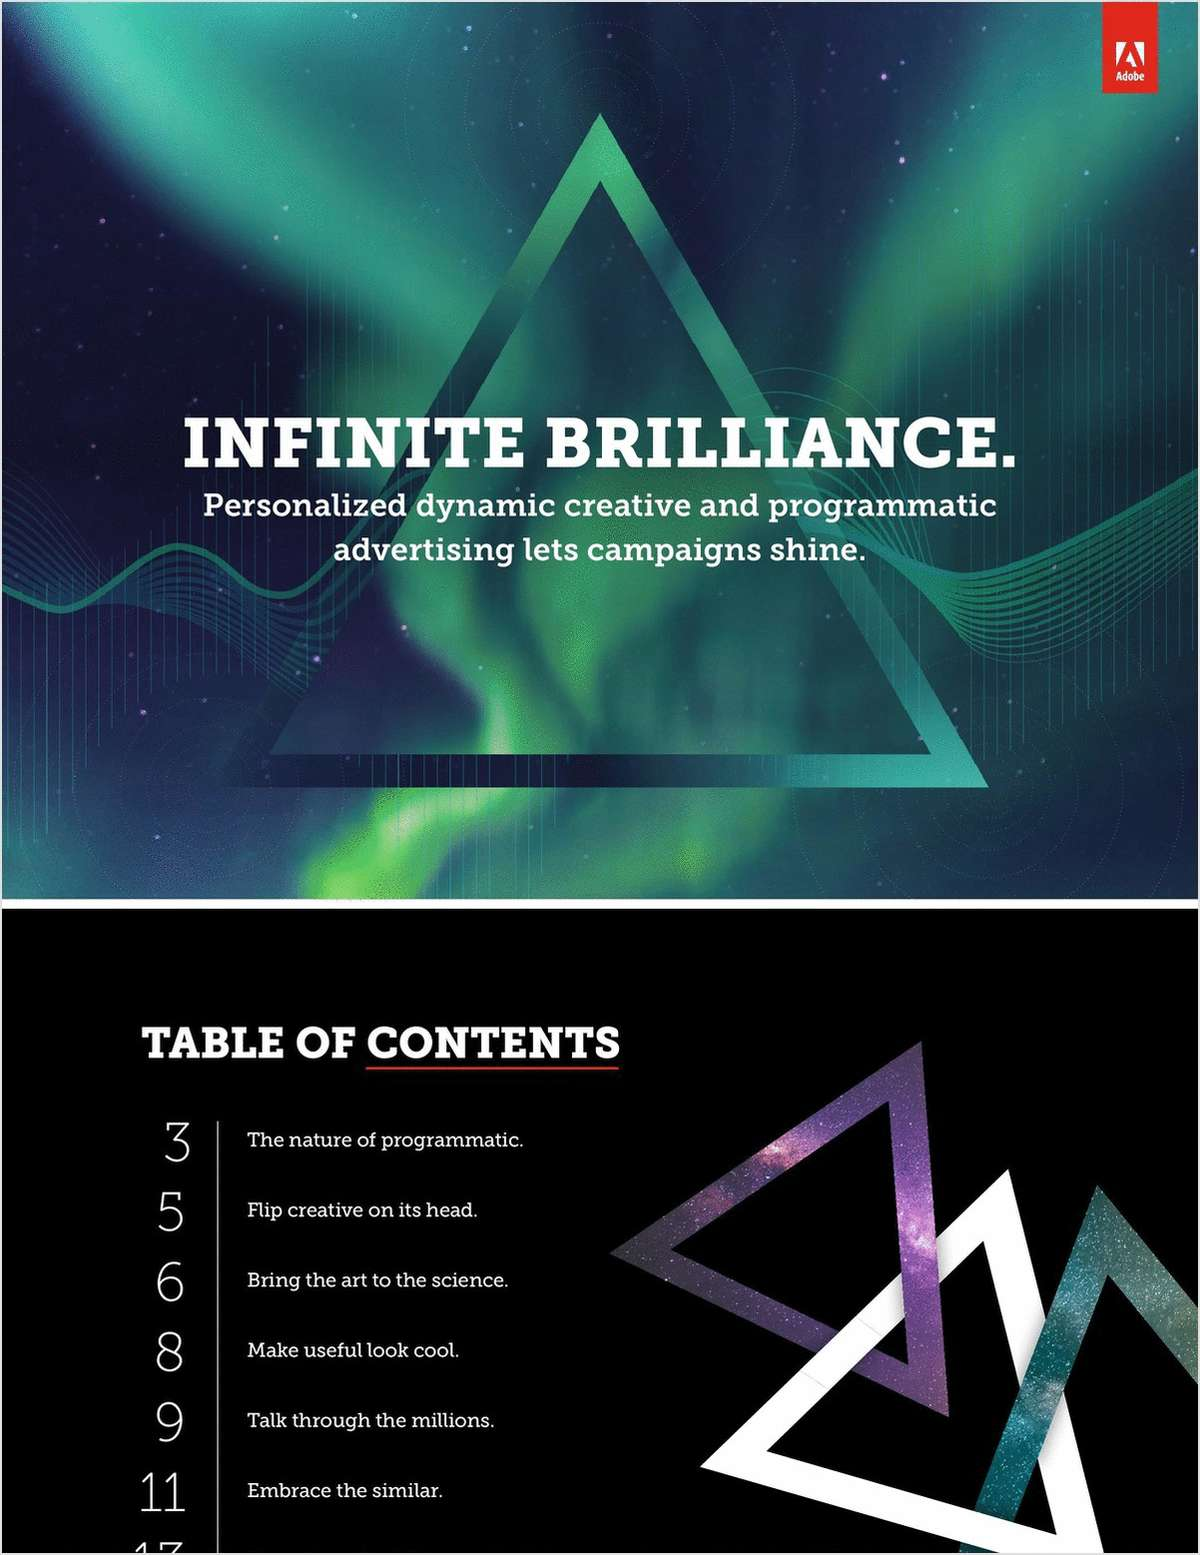 Infinite Brilliance. Personalized Dynamic Creative and Programmatic Advertising Lets Campaigns Shine.